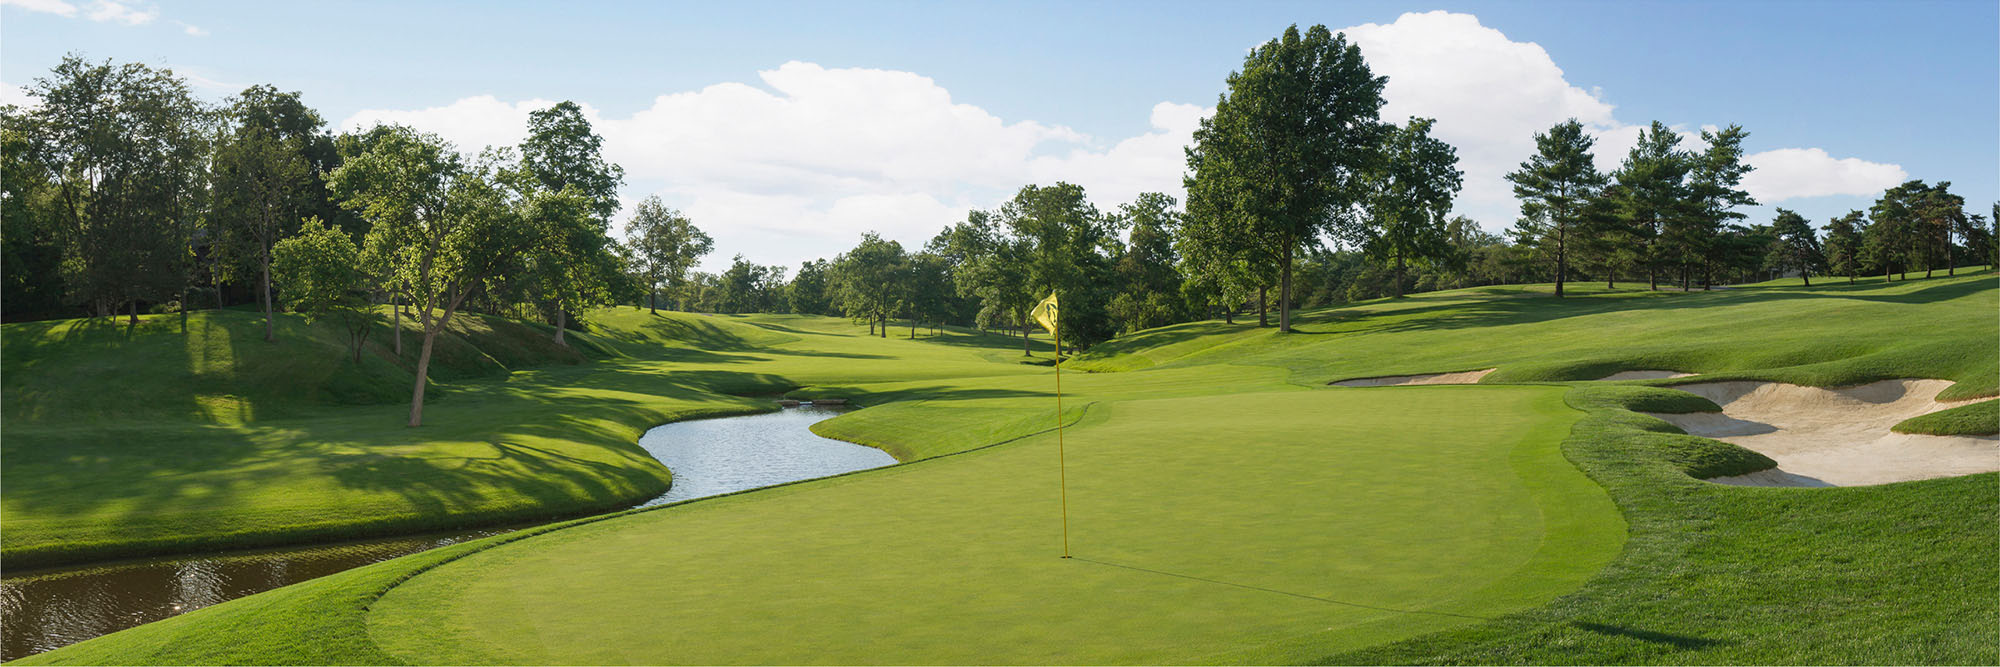 Golf Course Image - Muirfield Village No. 14